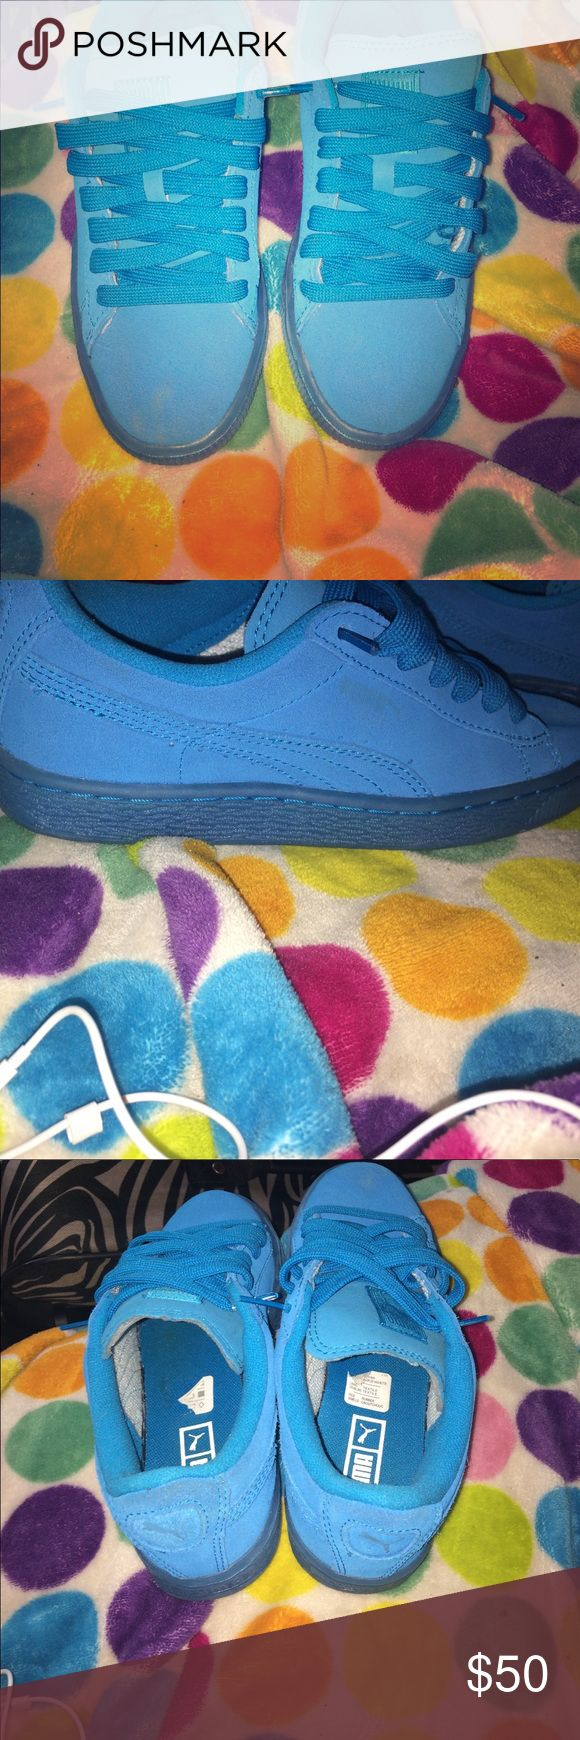 Light blue pumas suede sneakers Never worn brand new fresh out the box Puma Shoes Sneakers